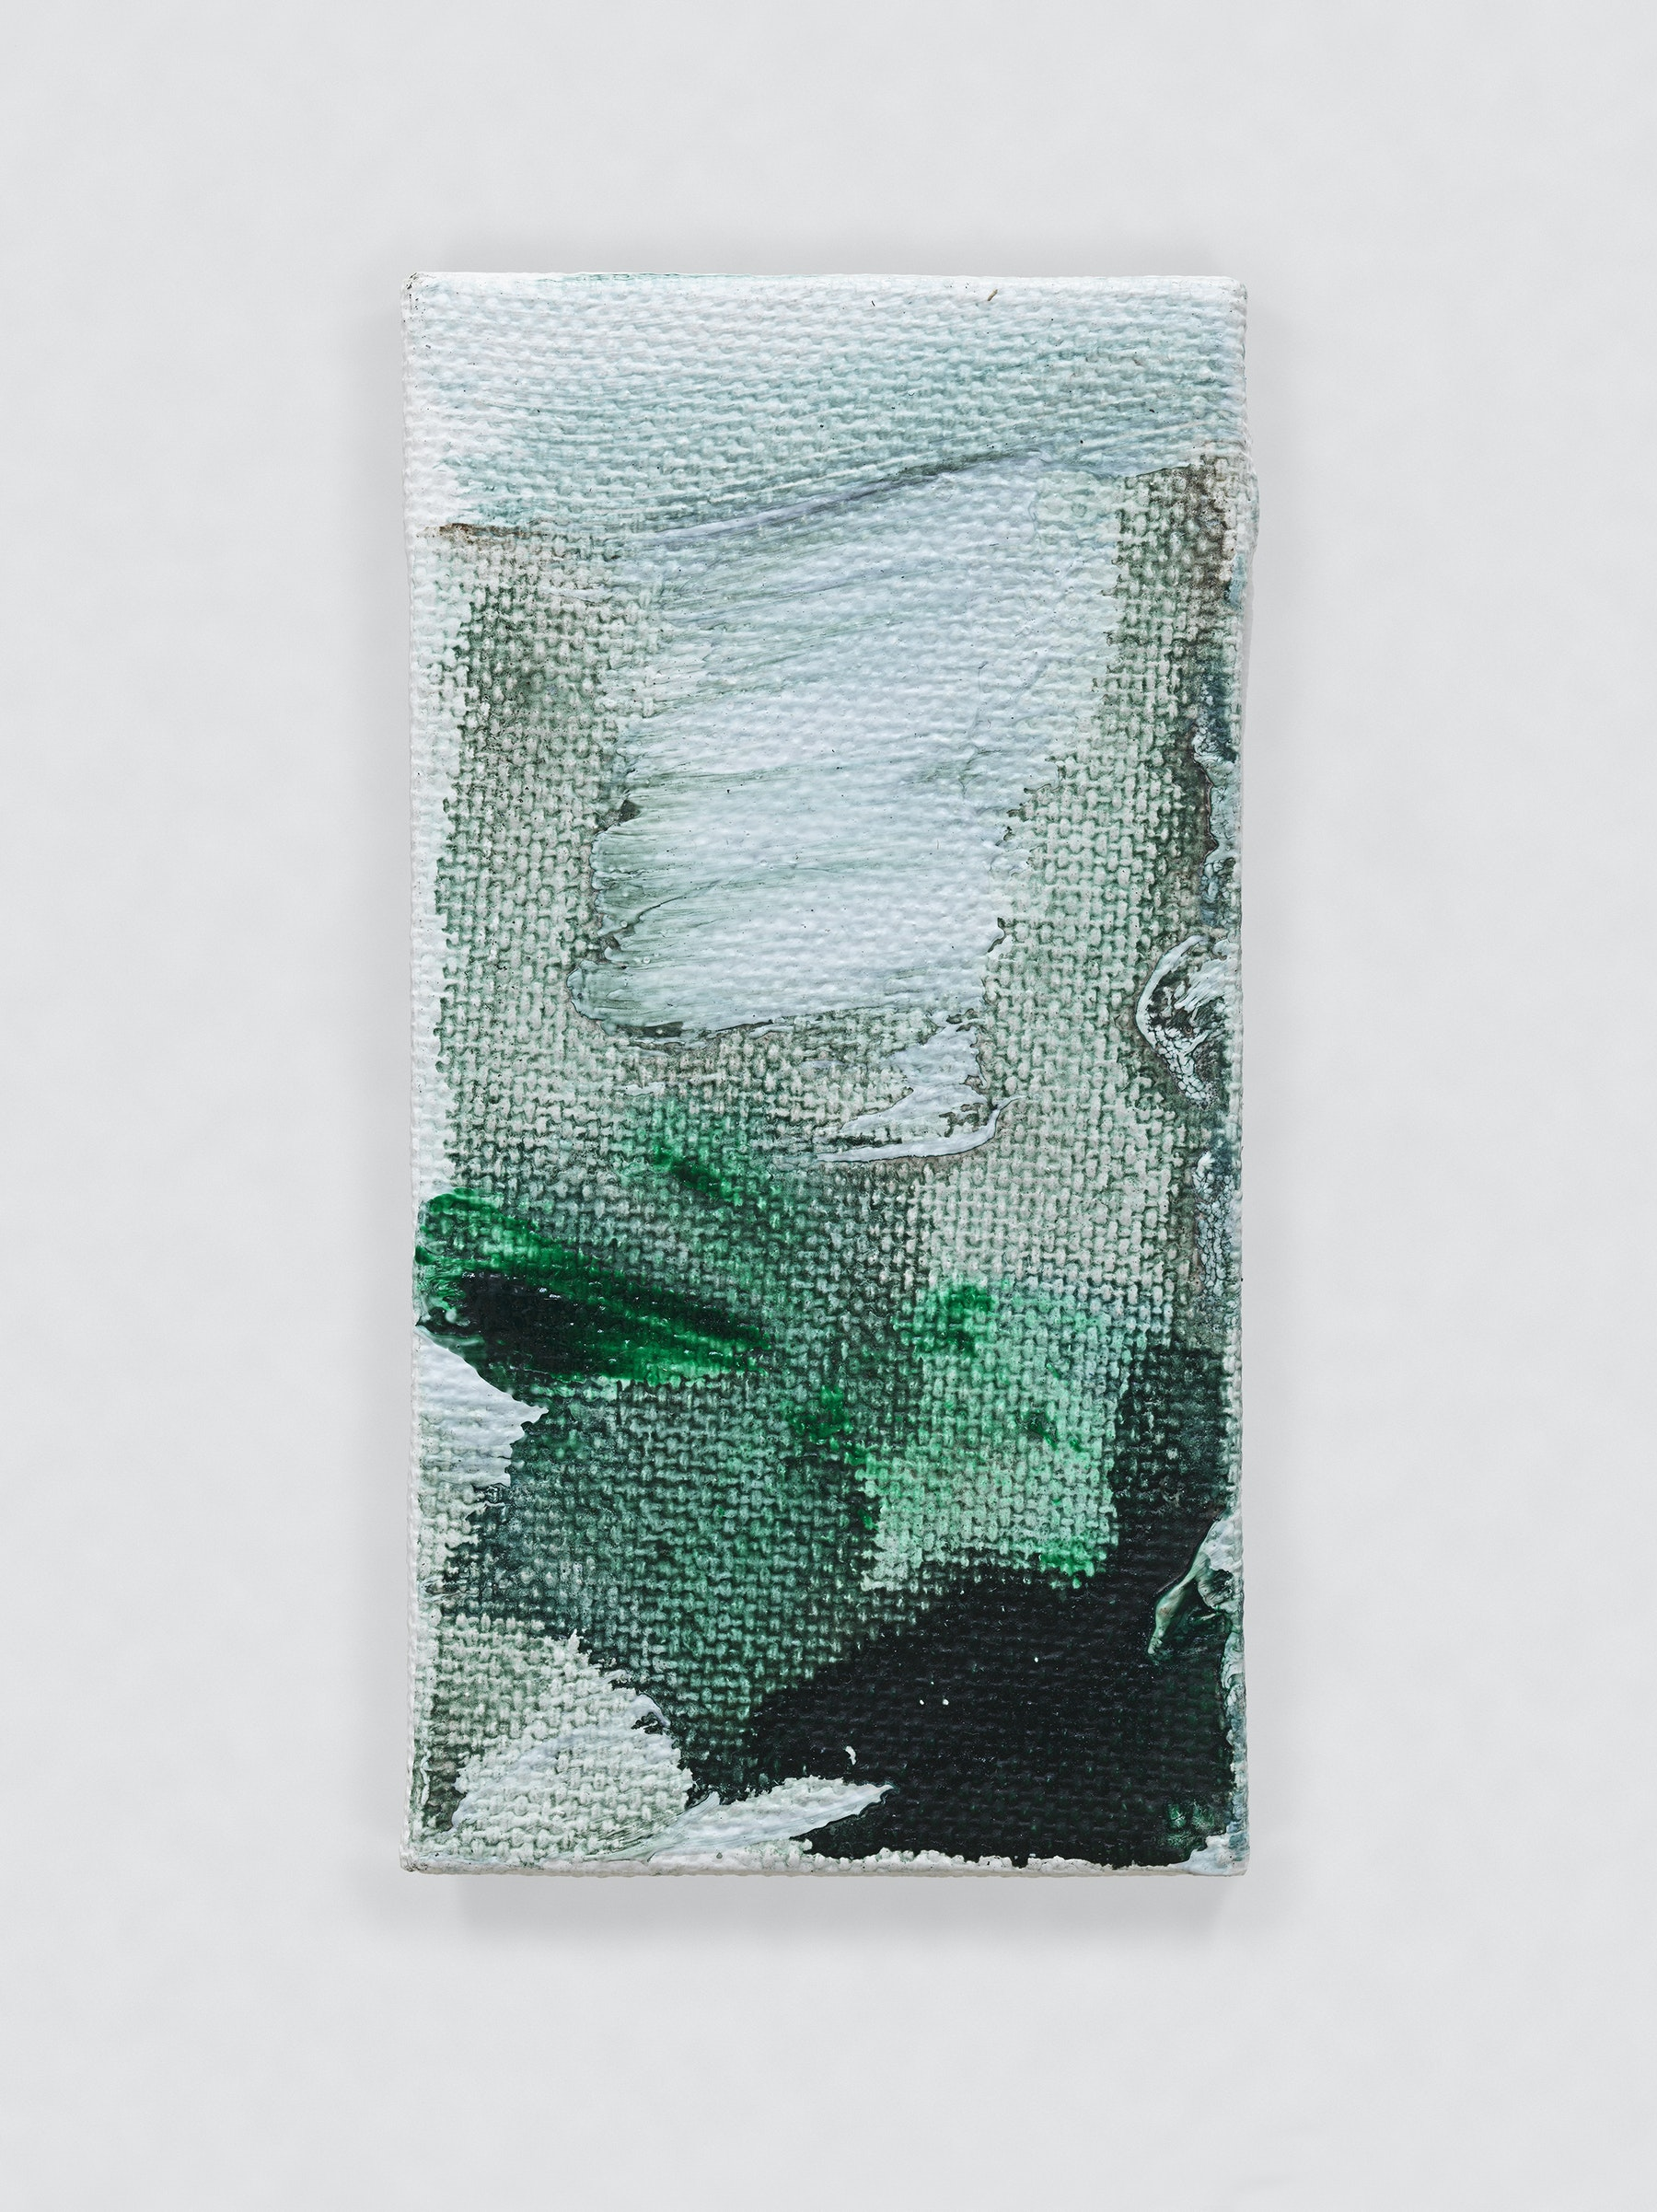 """Louise Fishman """"UNTITLED,"""" 2014 Oil on canvas 4.06 x 2.09"""" [HxW] (10.31 x 5.31 cm) Inventory #FIS148 Courtesy of the artist and Vielmetter Los Angeles Photo credit: Genevieve Hanson Signed and dated on verso"""